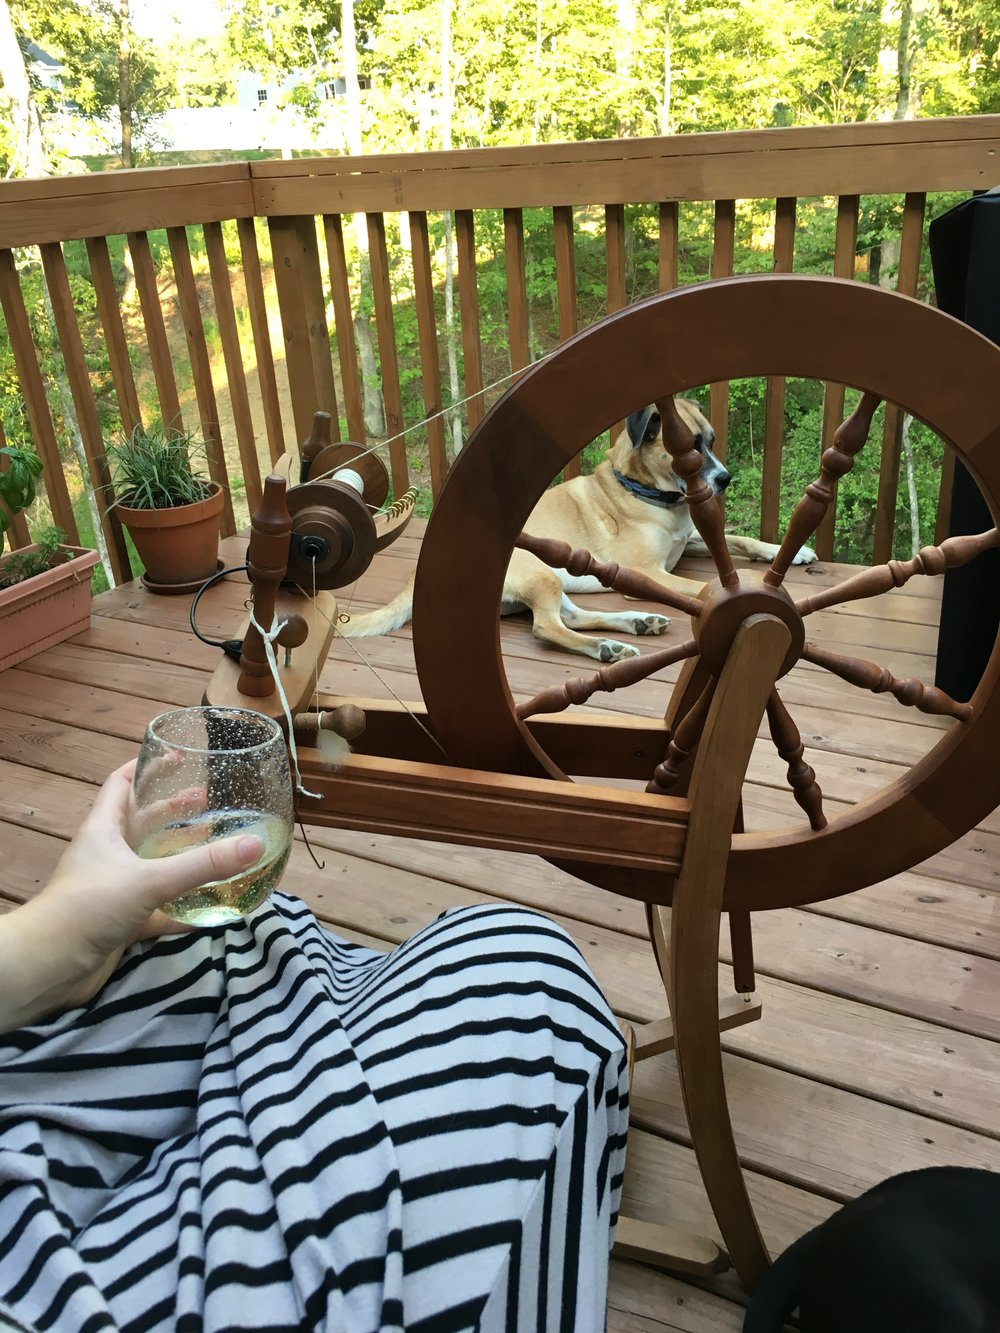 Spinning on the deck - Spinning can be so relaxing, bringing it outside and adding a glass of wine just adds to the relaxation.